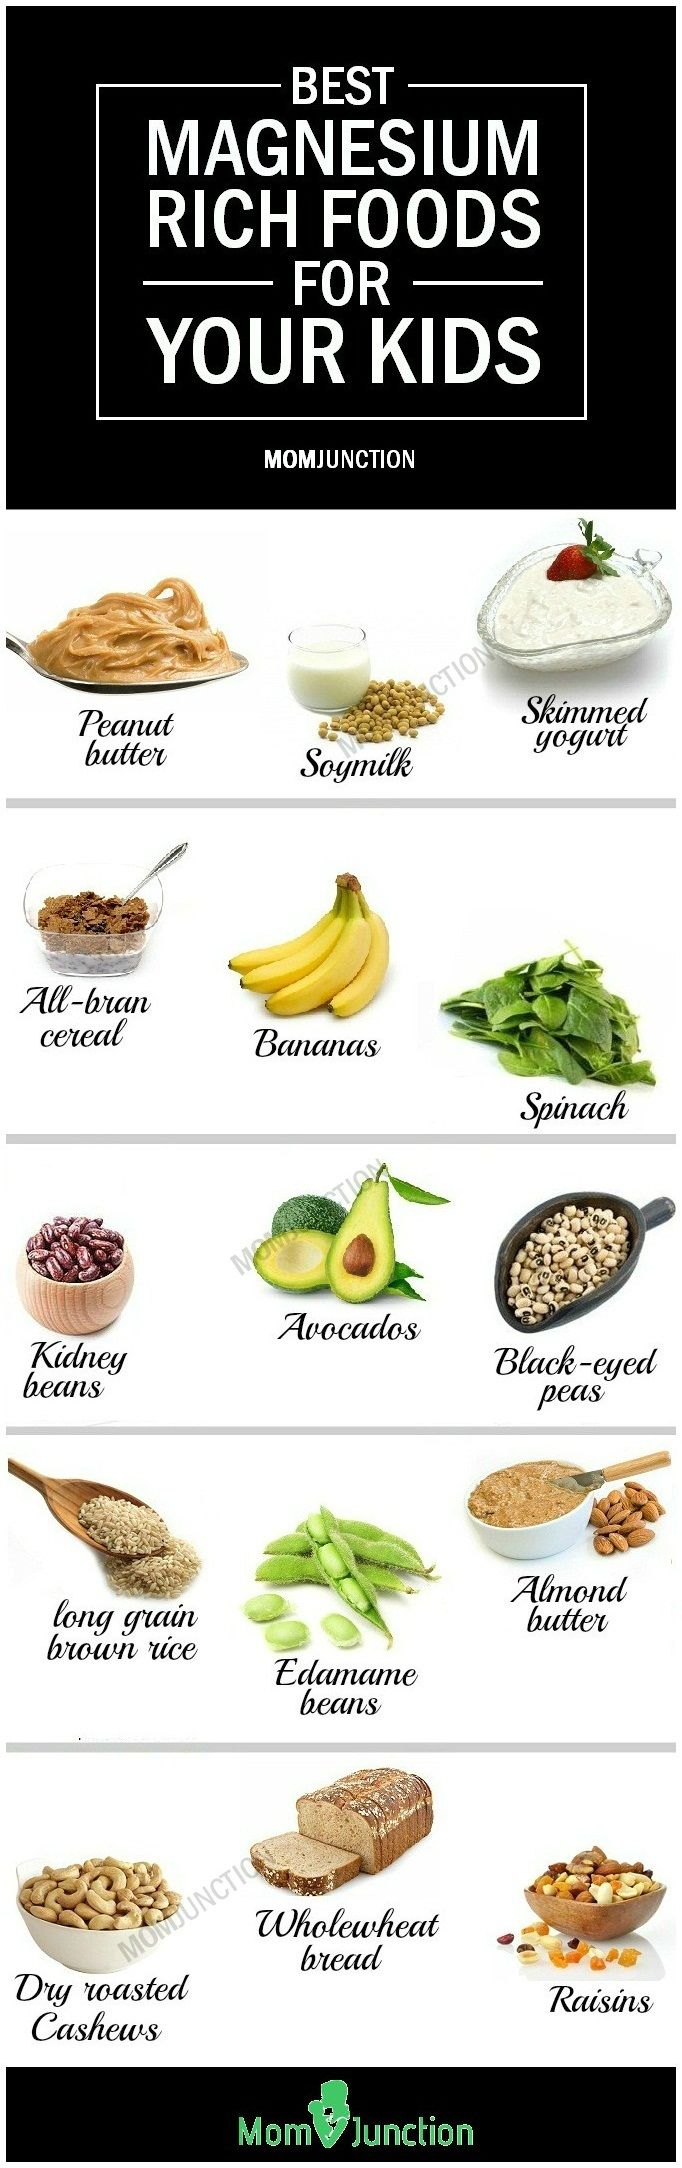 Things with magnesium in them